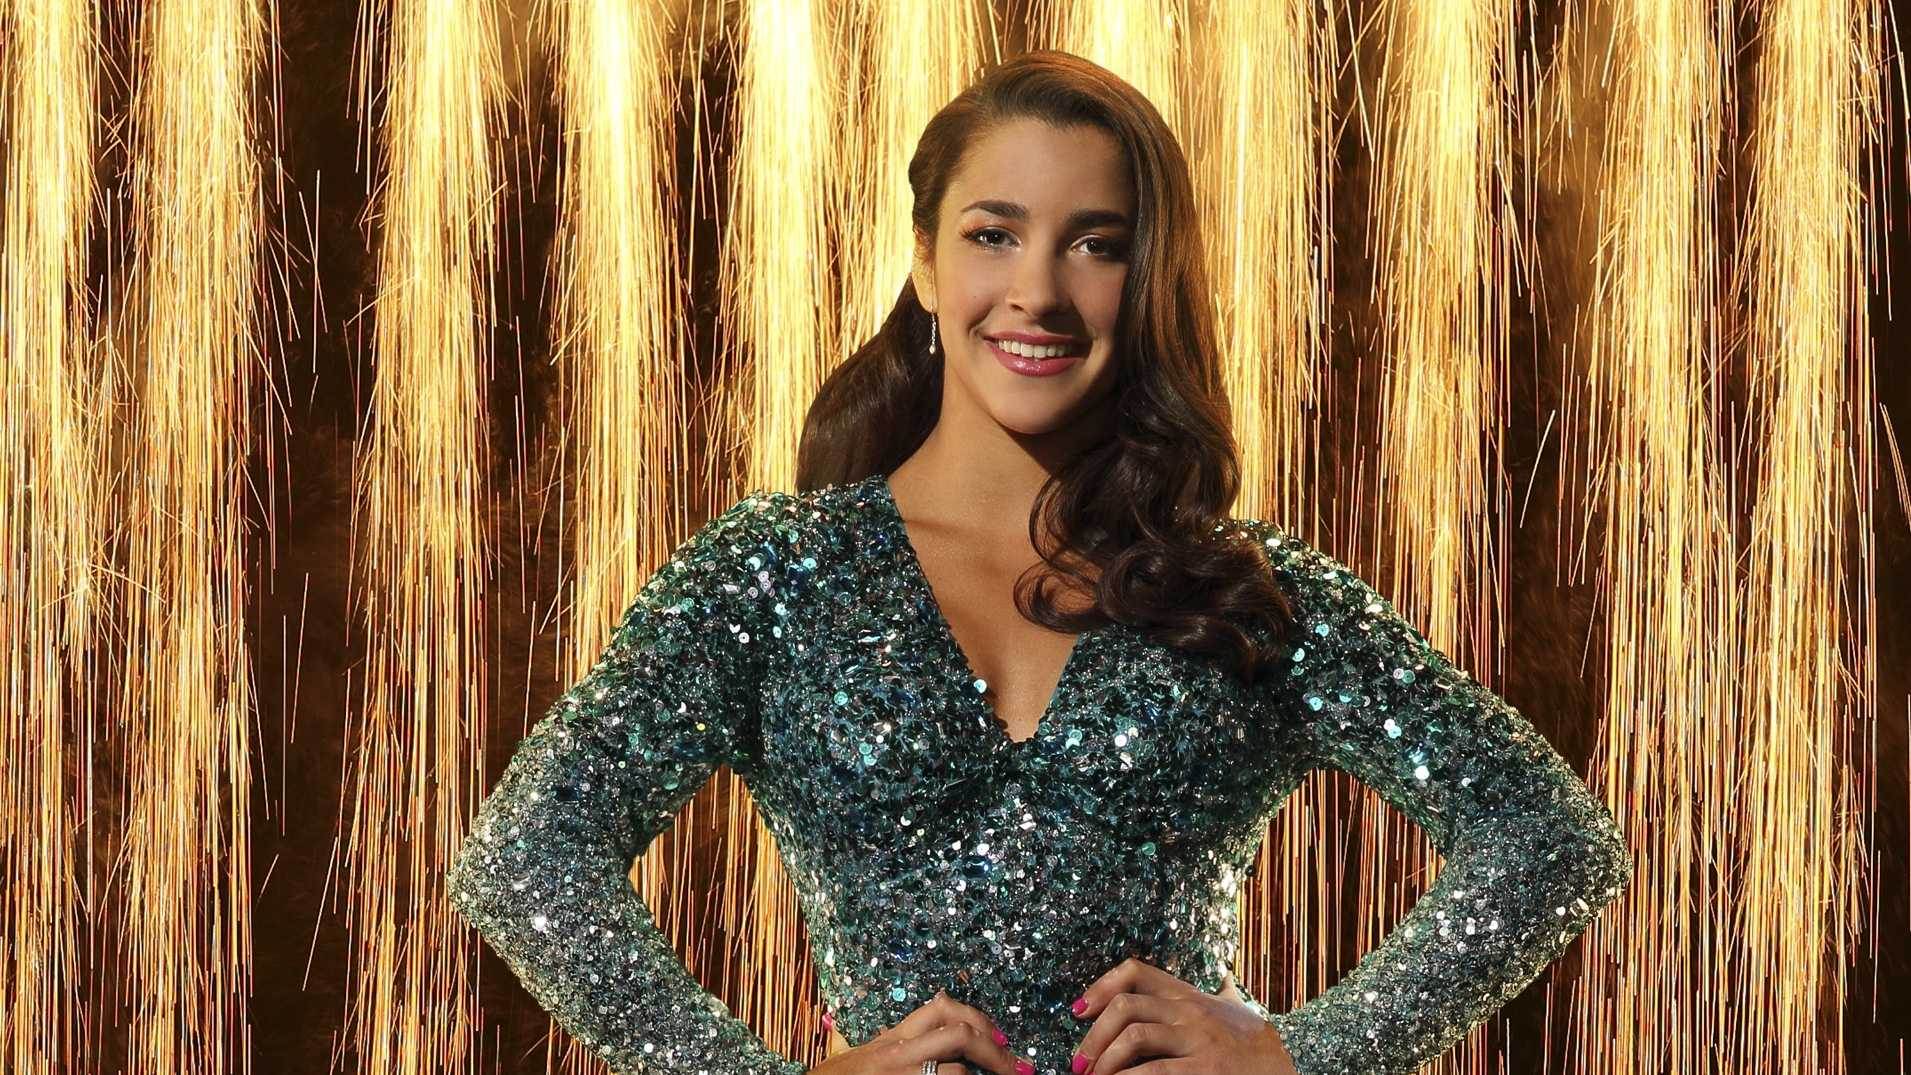 DWTS - Aly Official Tight Shot.jpg